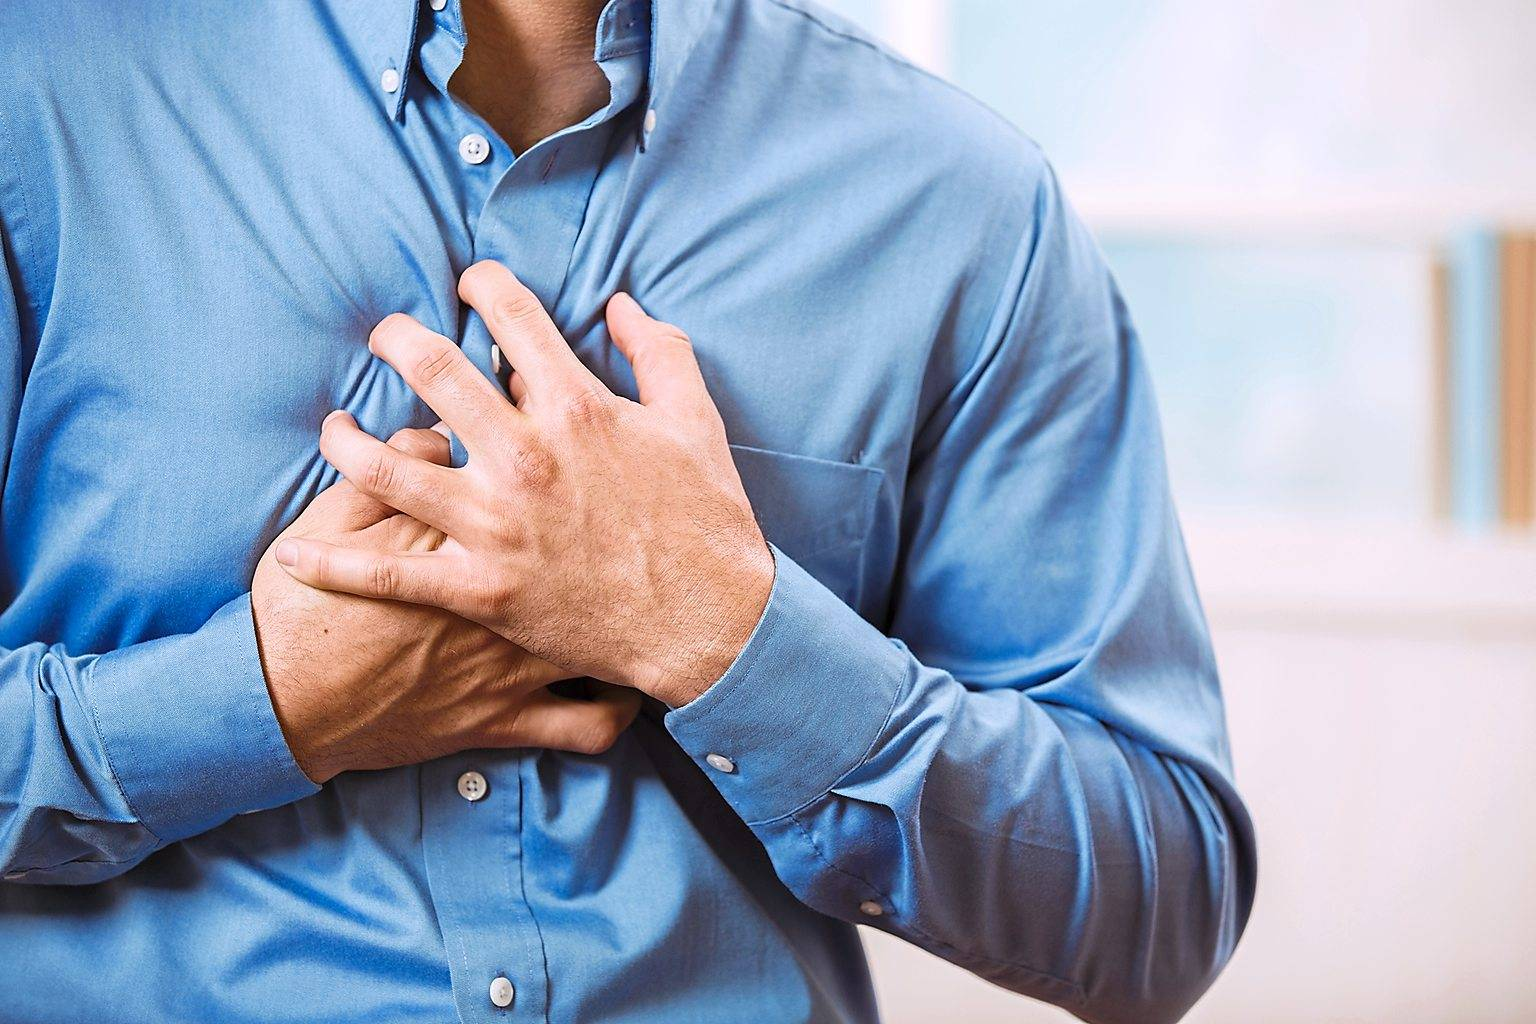 Heart Attack Medical Emergency